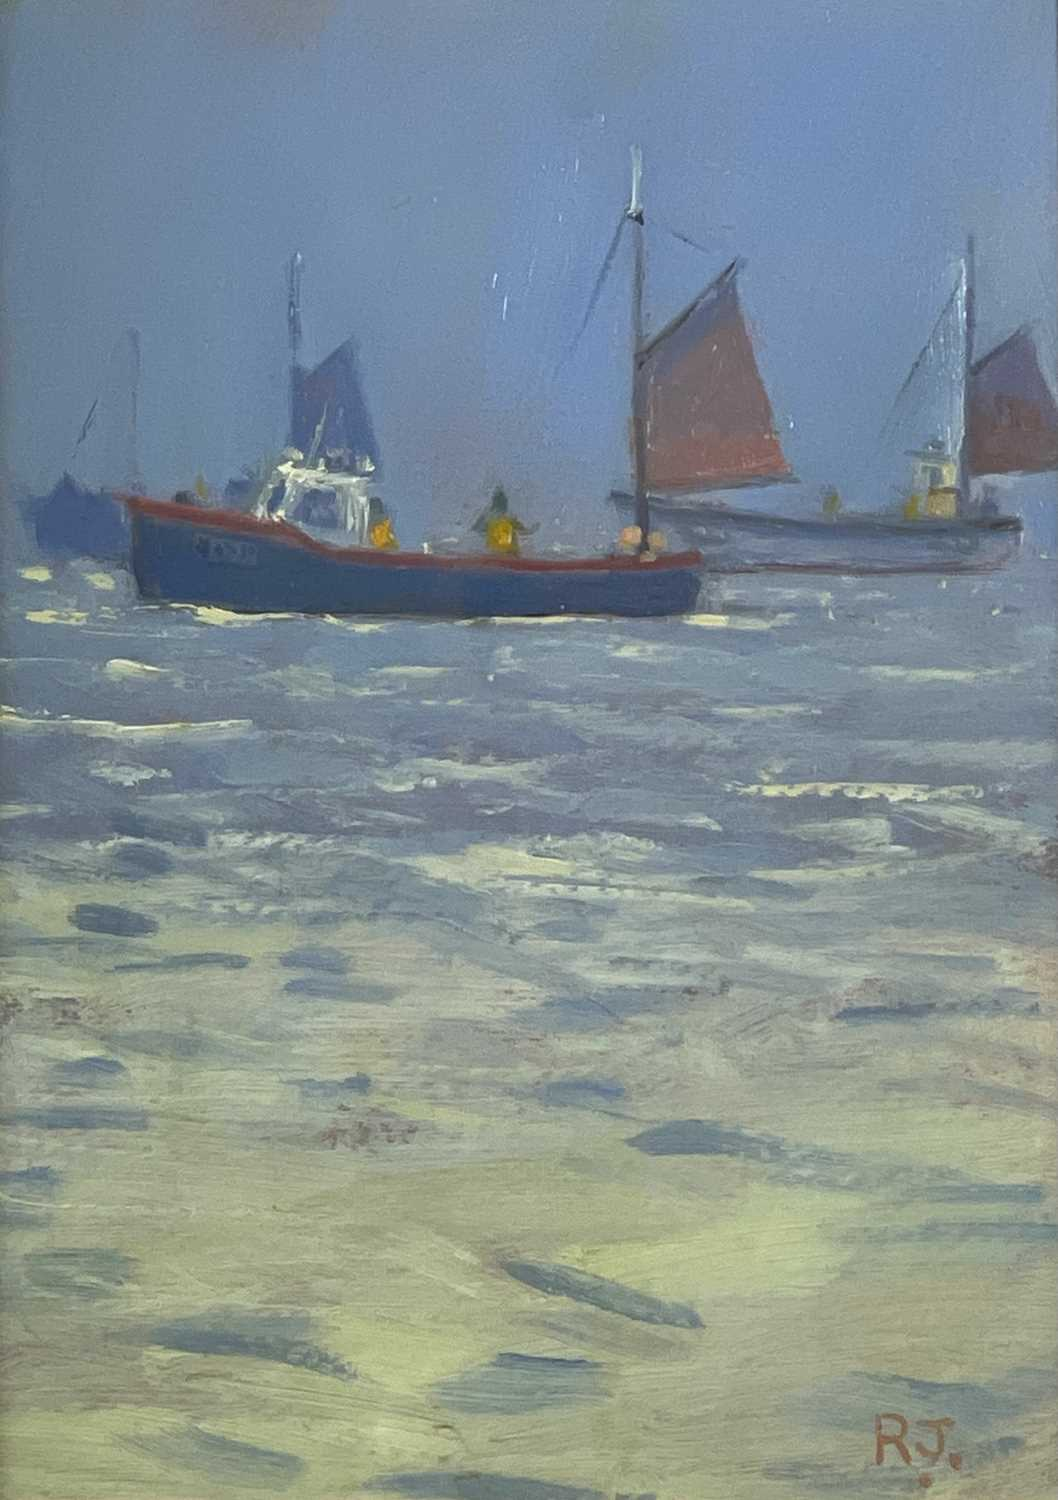 Robert JONES (1943)Mackerel Fishing Oil on board Initialled Signed, inscribed and dated 2003 to